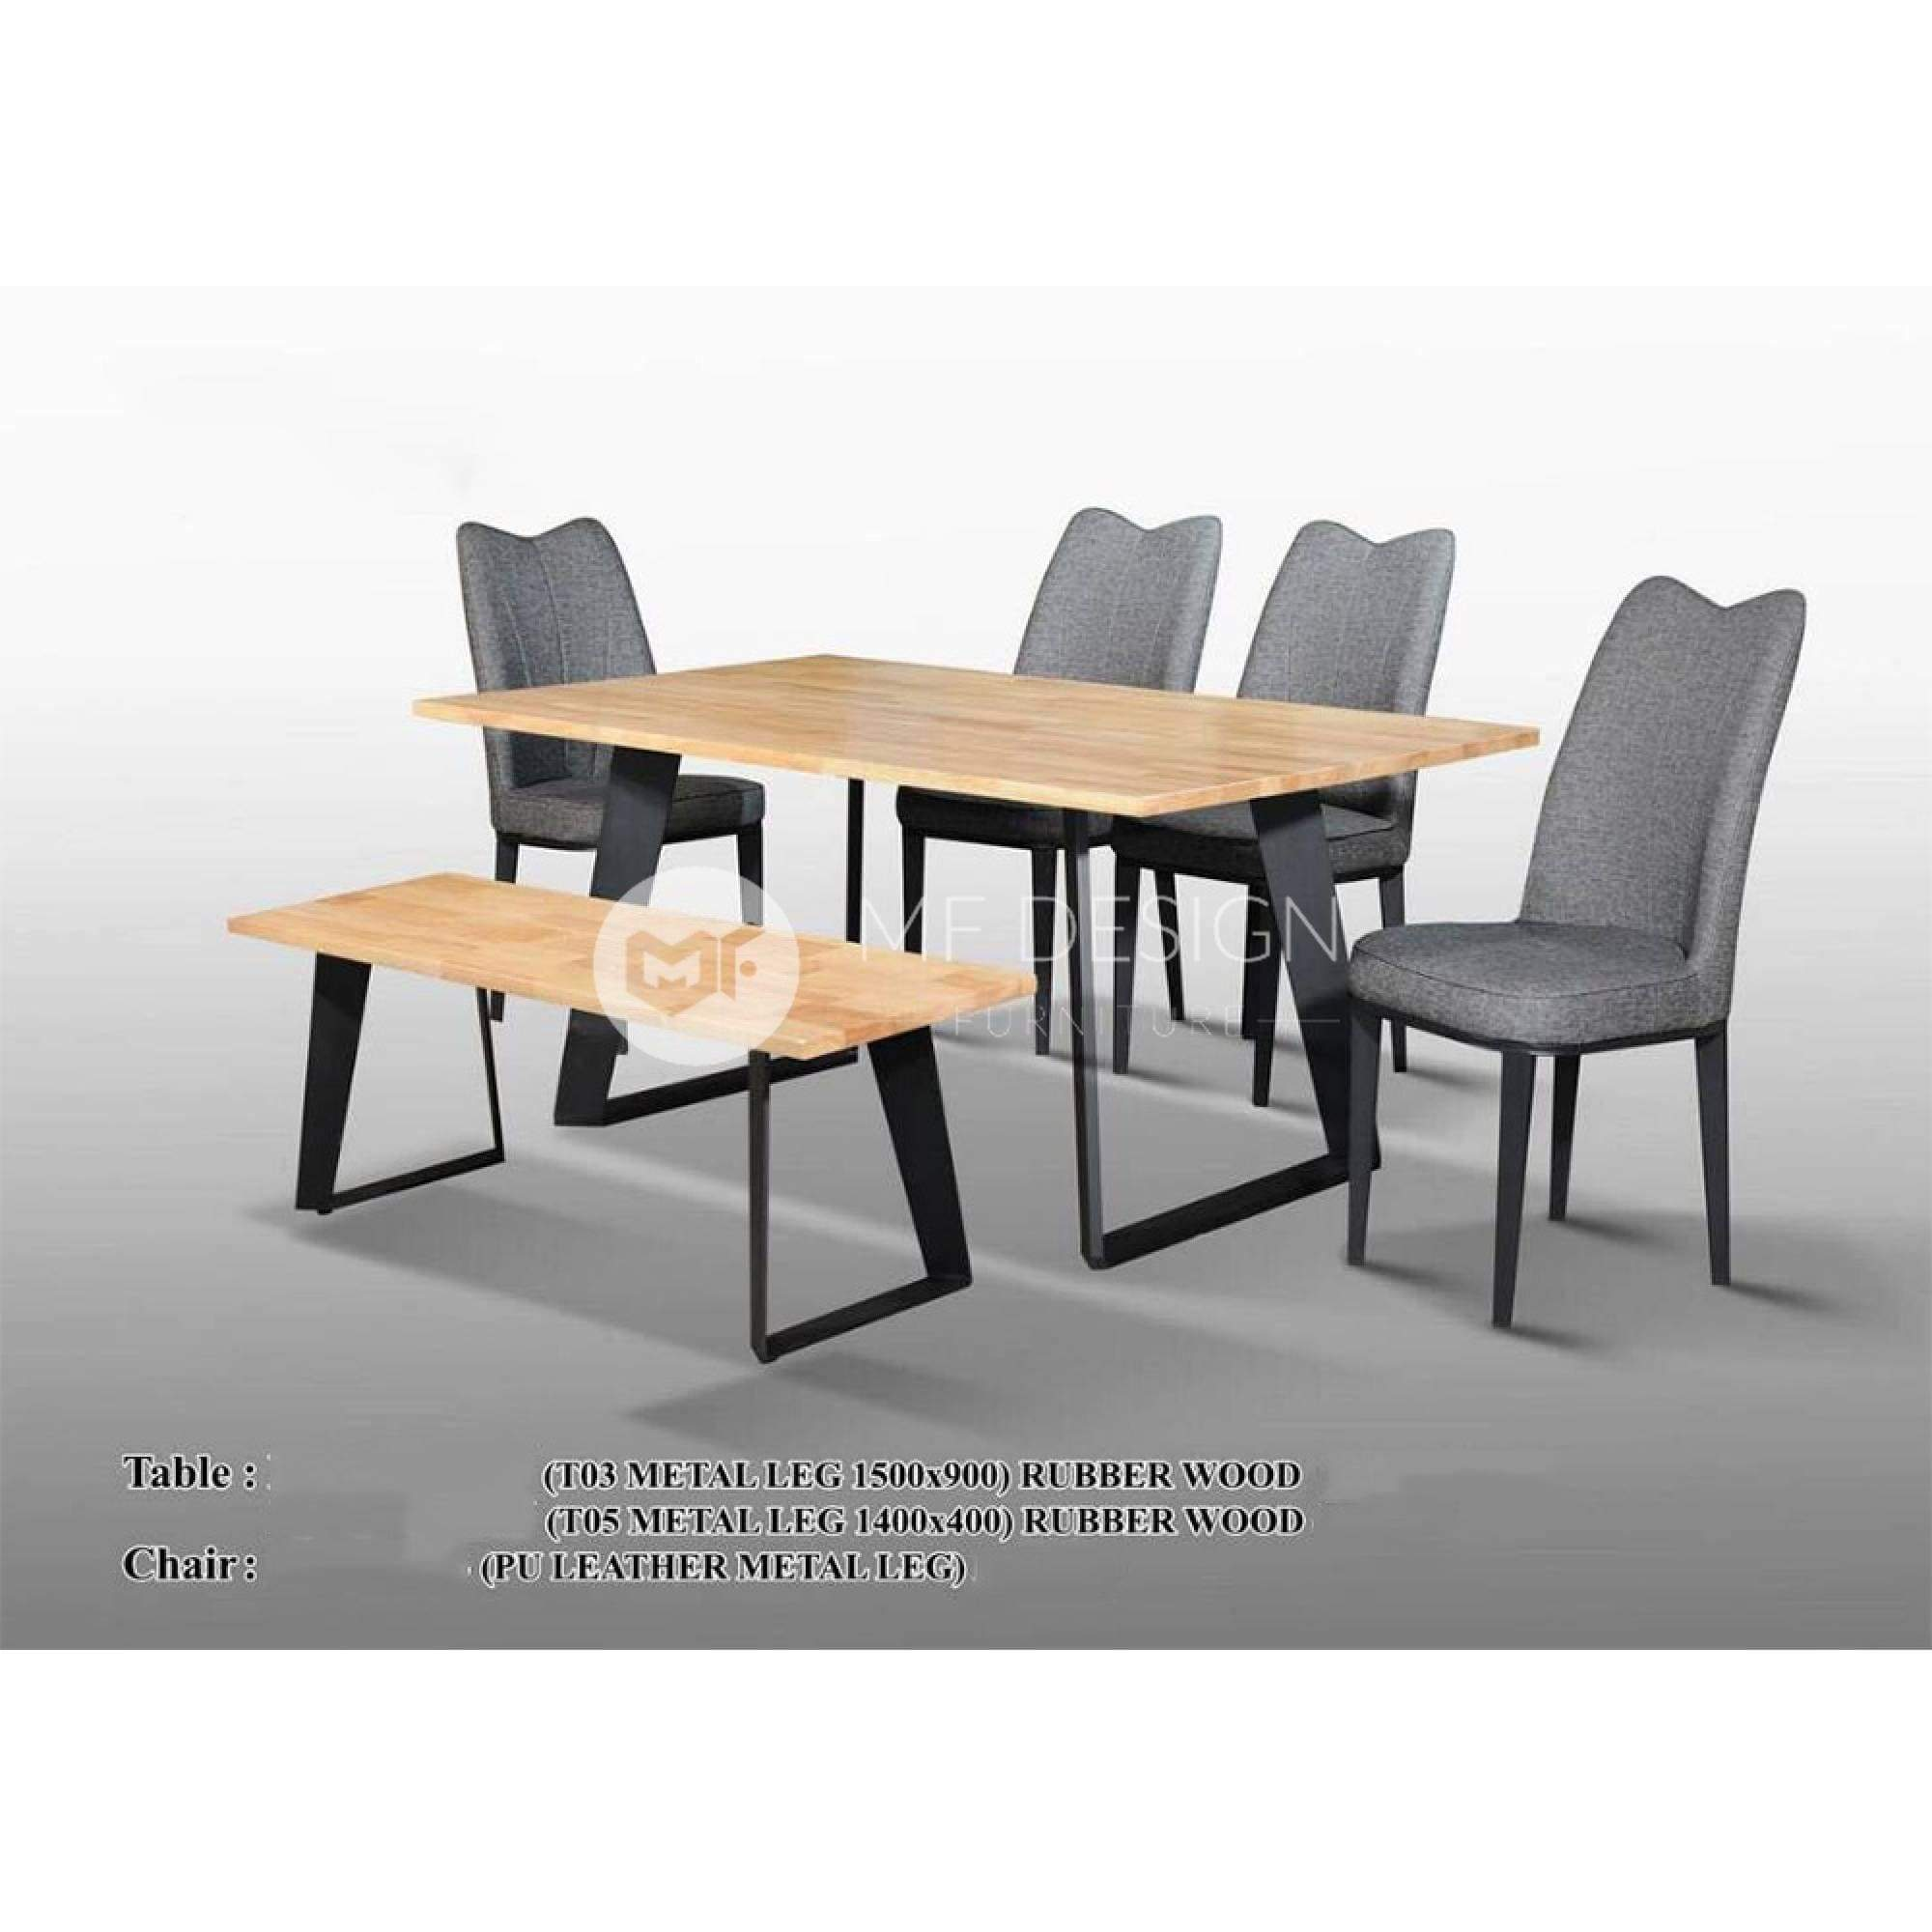 mfdesign88 Dining Sets Topaz Dining Set ( 1 Table + 4 Chairs + 1 Bench )